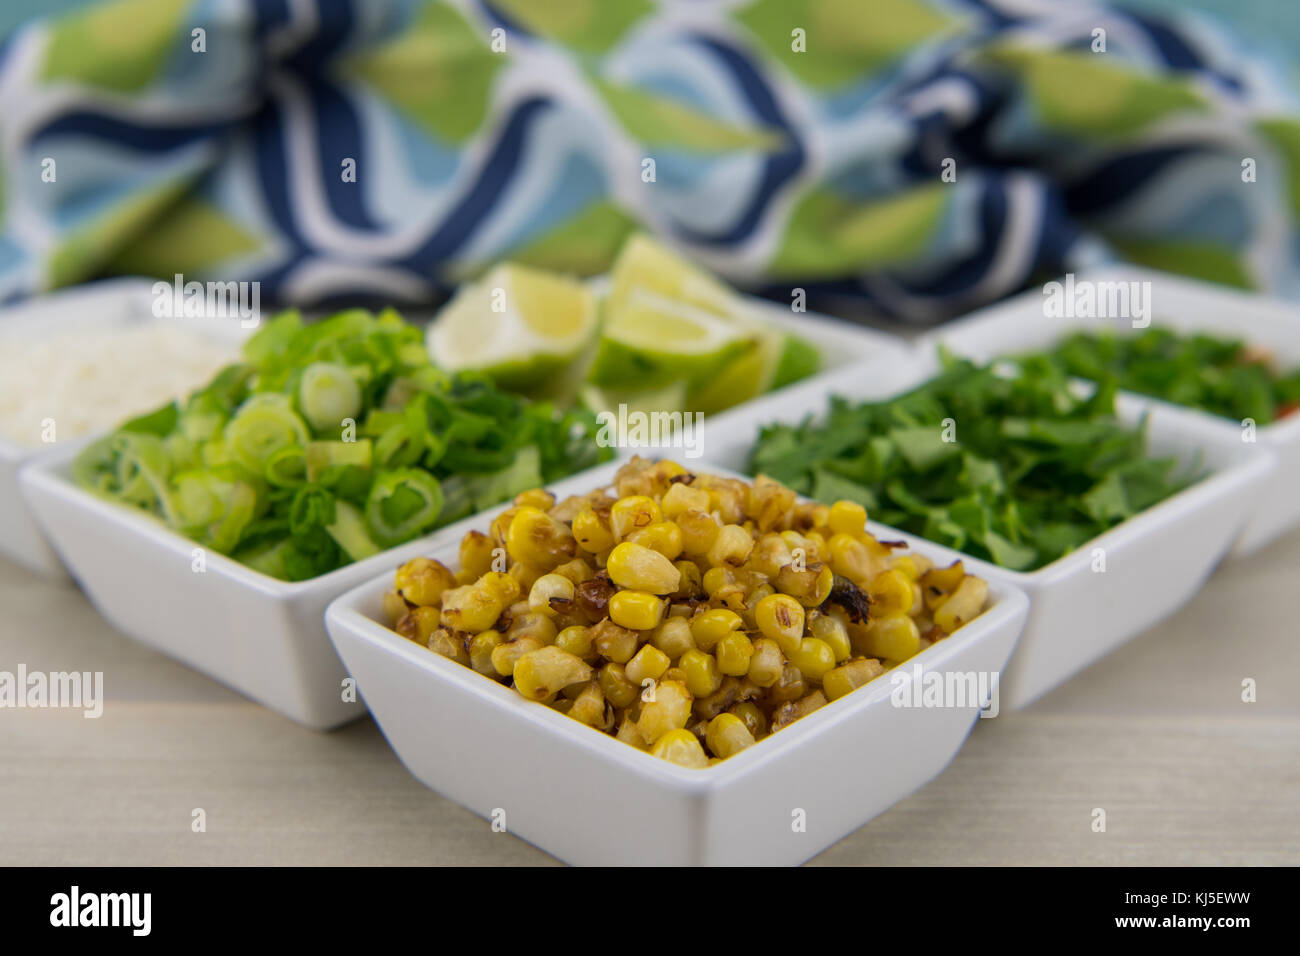 Roasted Corn in White Bowl in front of seasonings for street corn - Stock Image